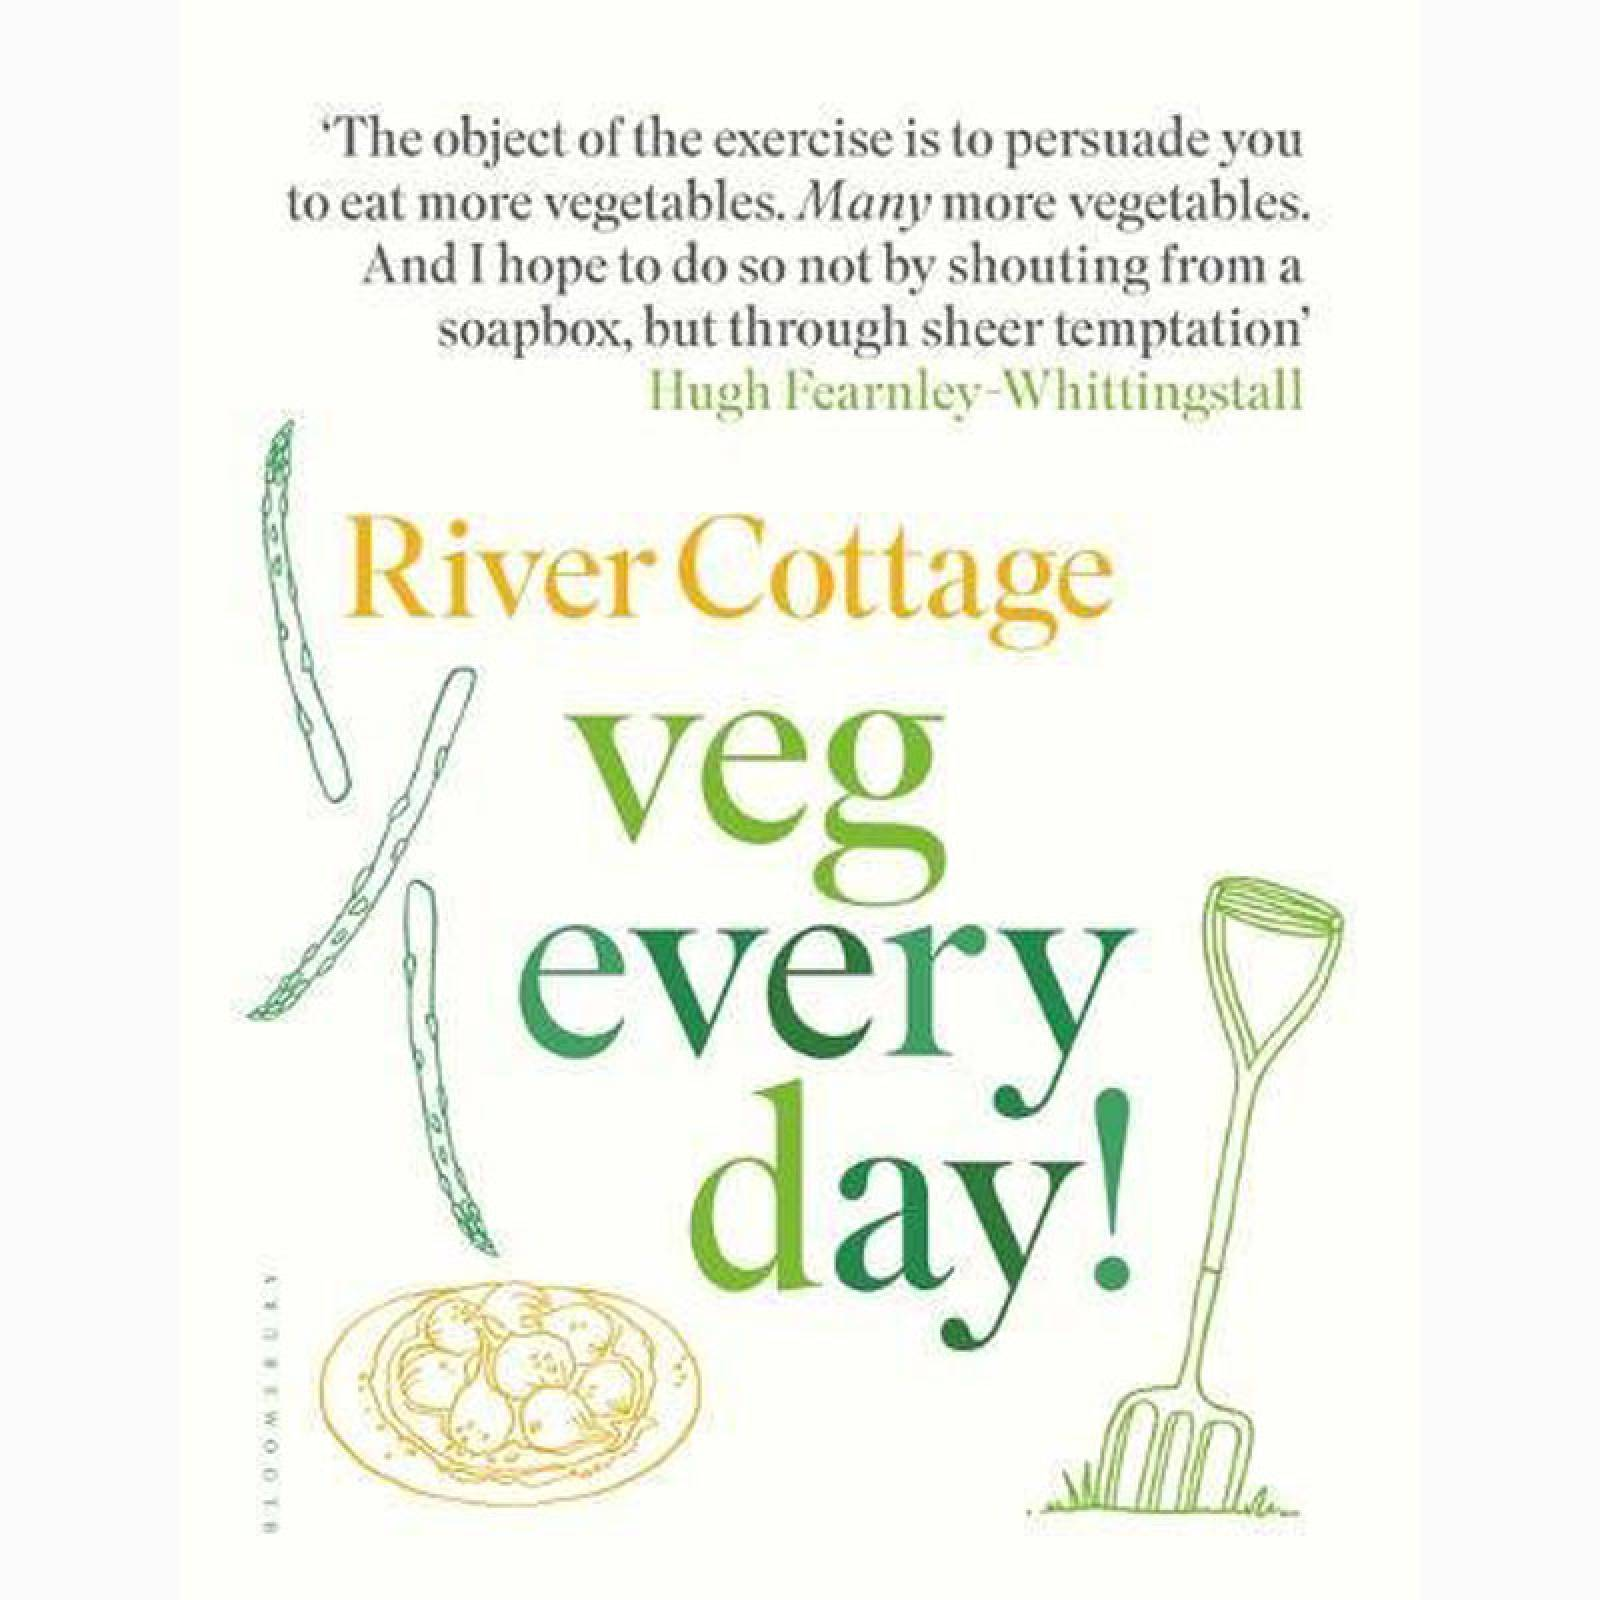 River Cottage Veg Every Day! - Hardback Book thumbnails